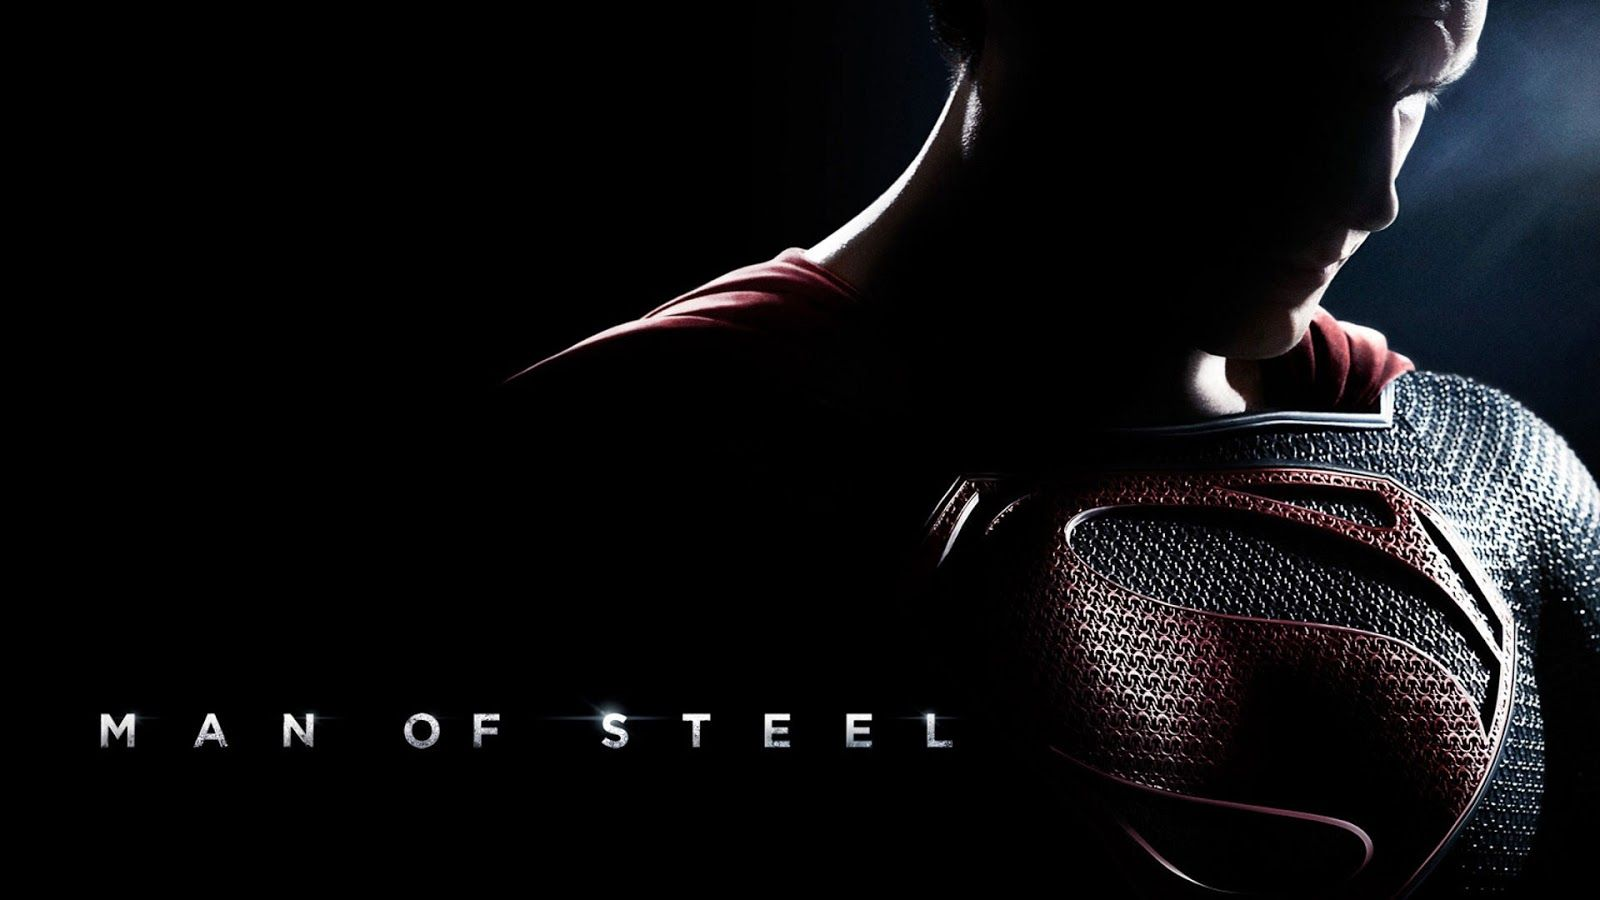 Image for Man of Steel Movie HD Wallpapers GA35 WallpaperZoom